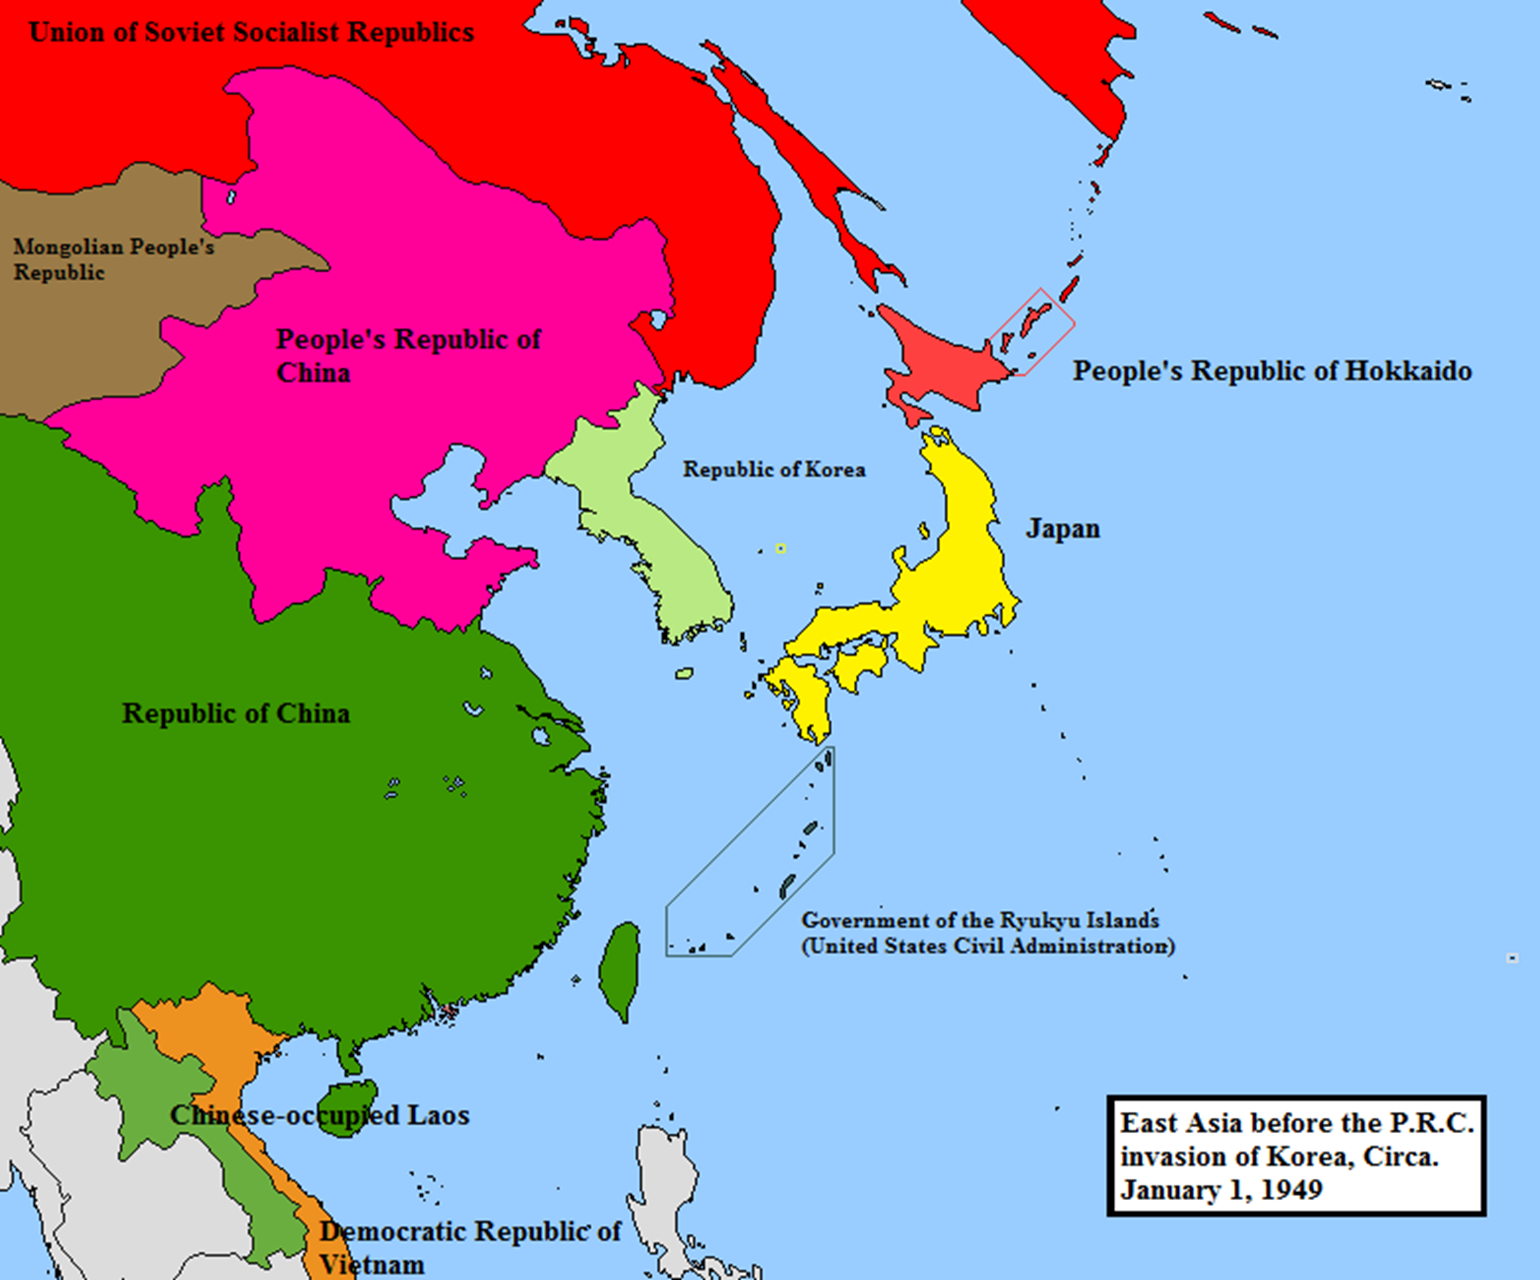 Cold War Map Of Asia.The Cold War In Asia Lessons Of Covert Action In Tibet Whole